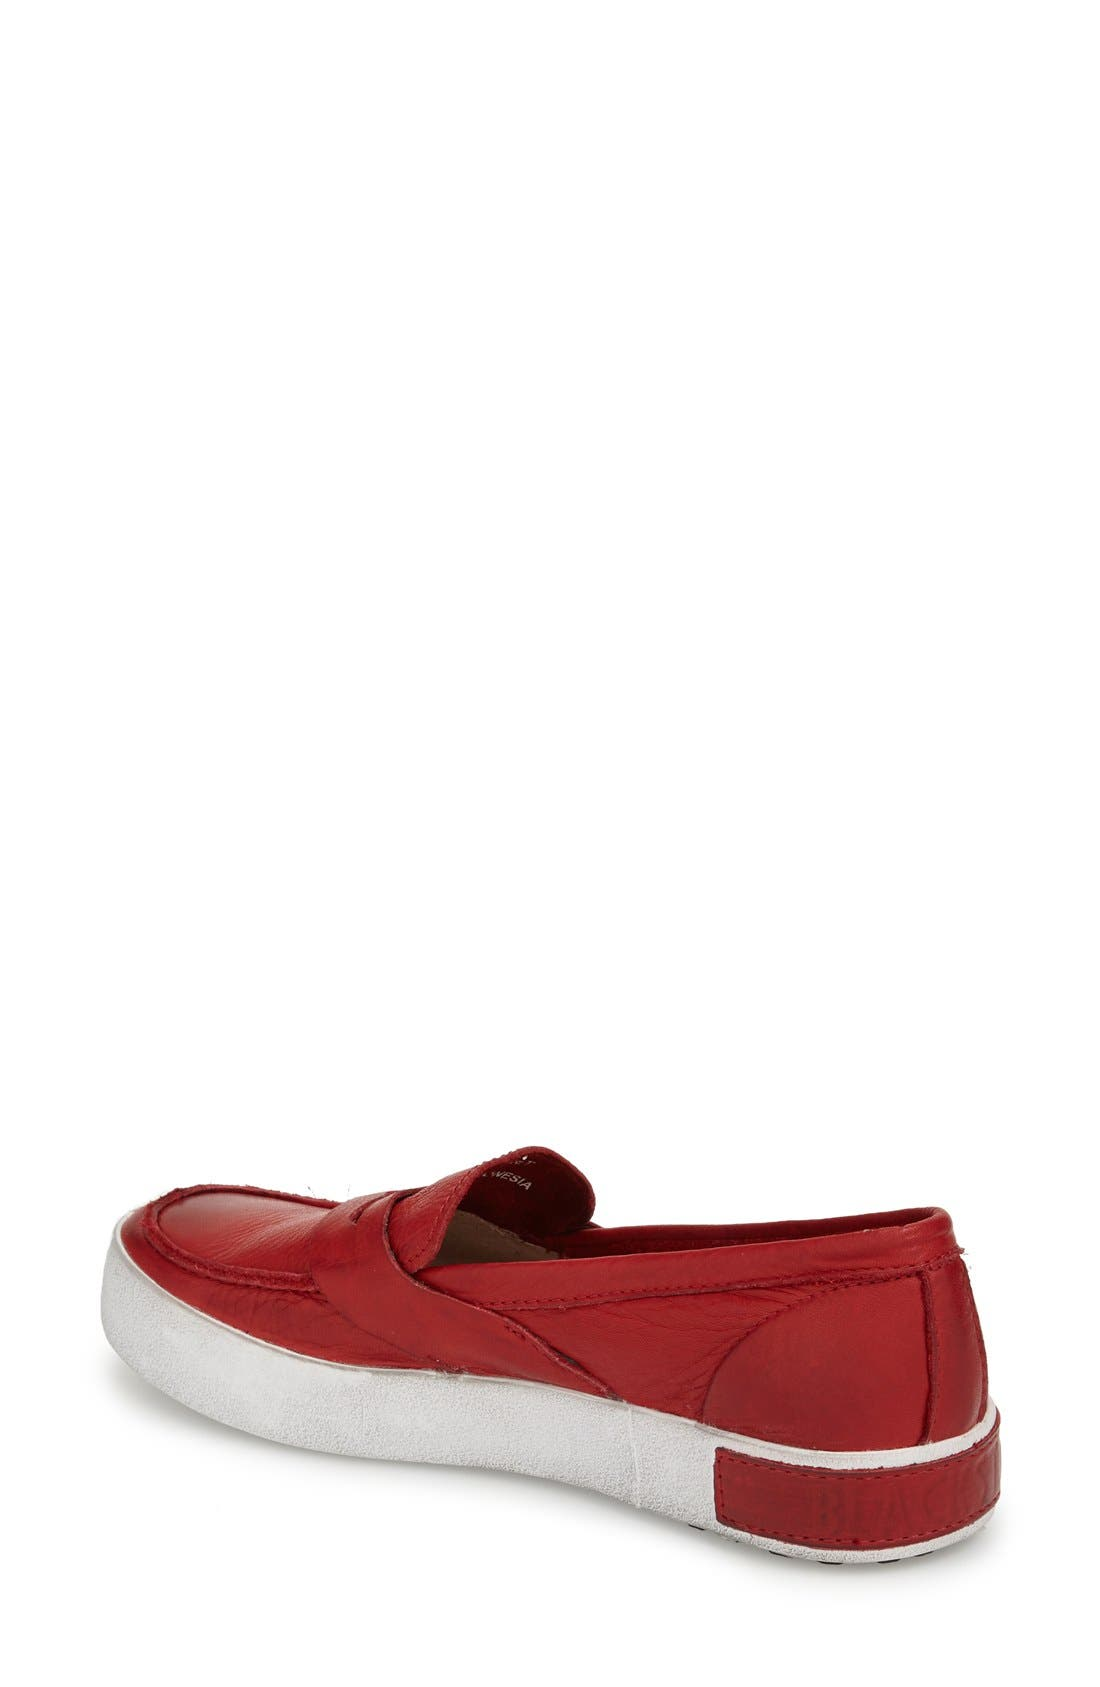 'JL22' Loafer Sneaker,                             Alternate thumbnail 2, color,                             600